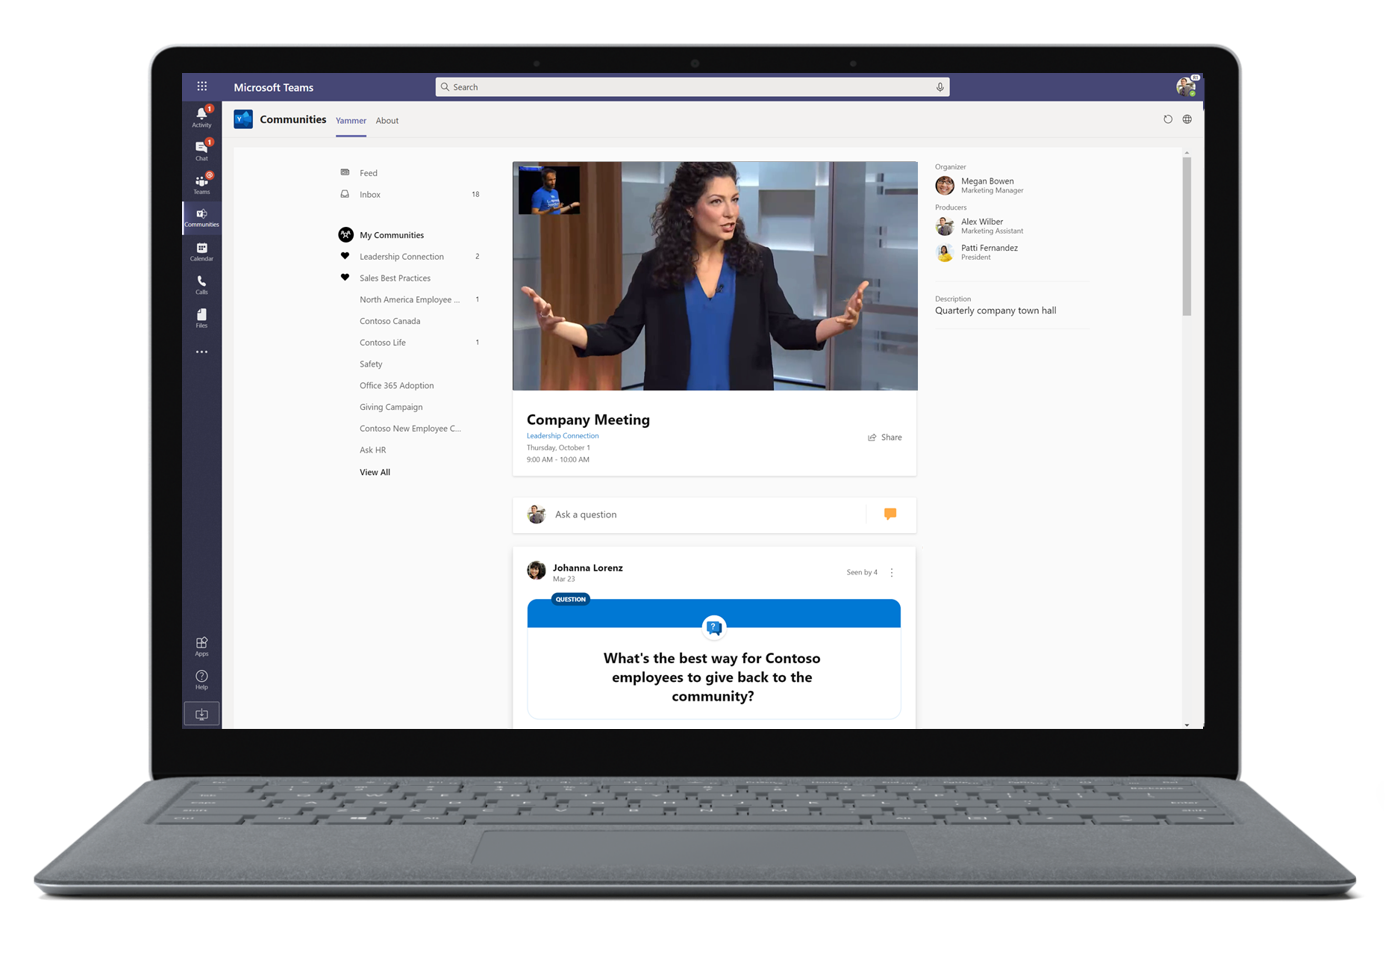 Image of a company meeting in Microsoft Teams.